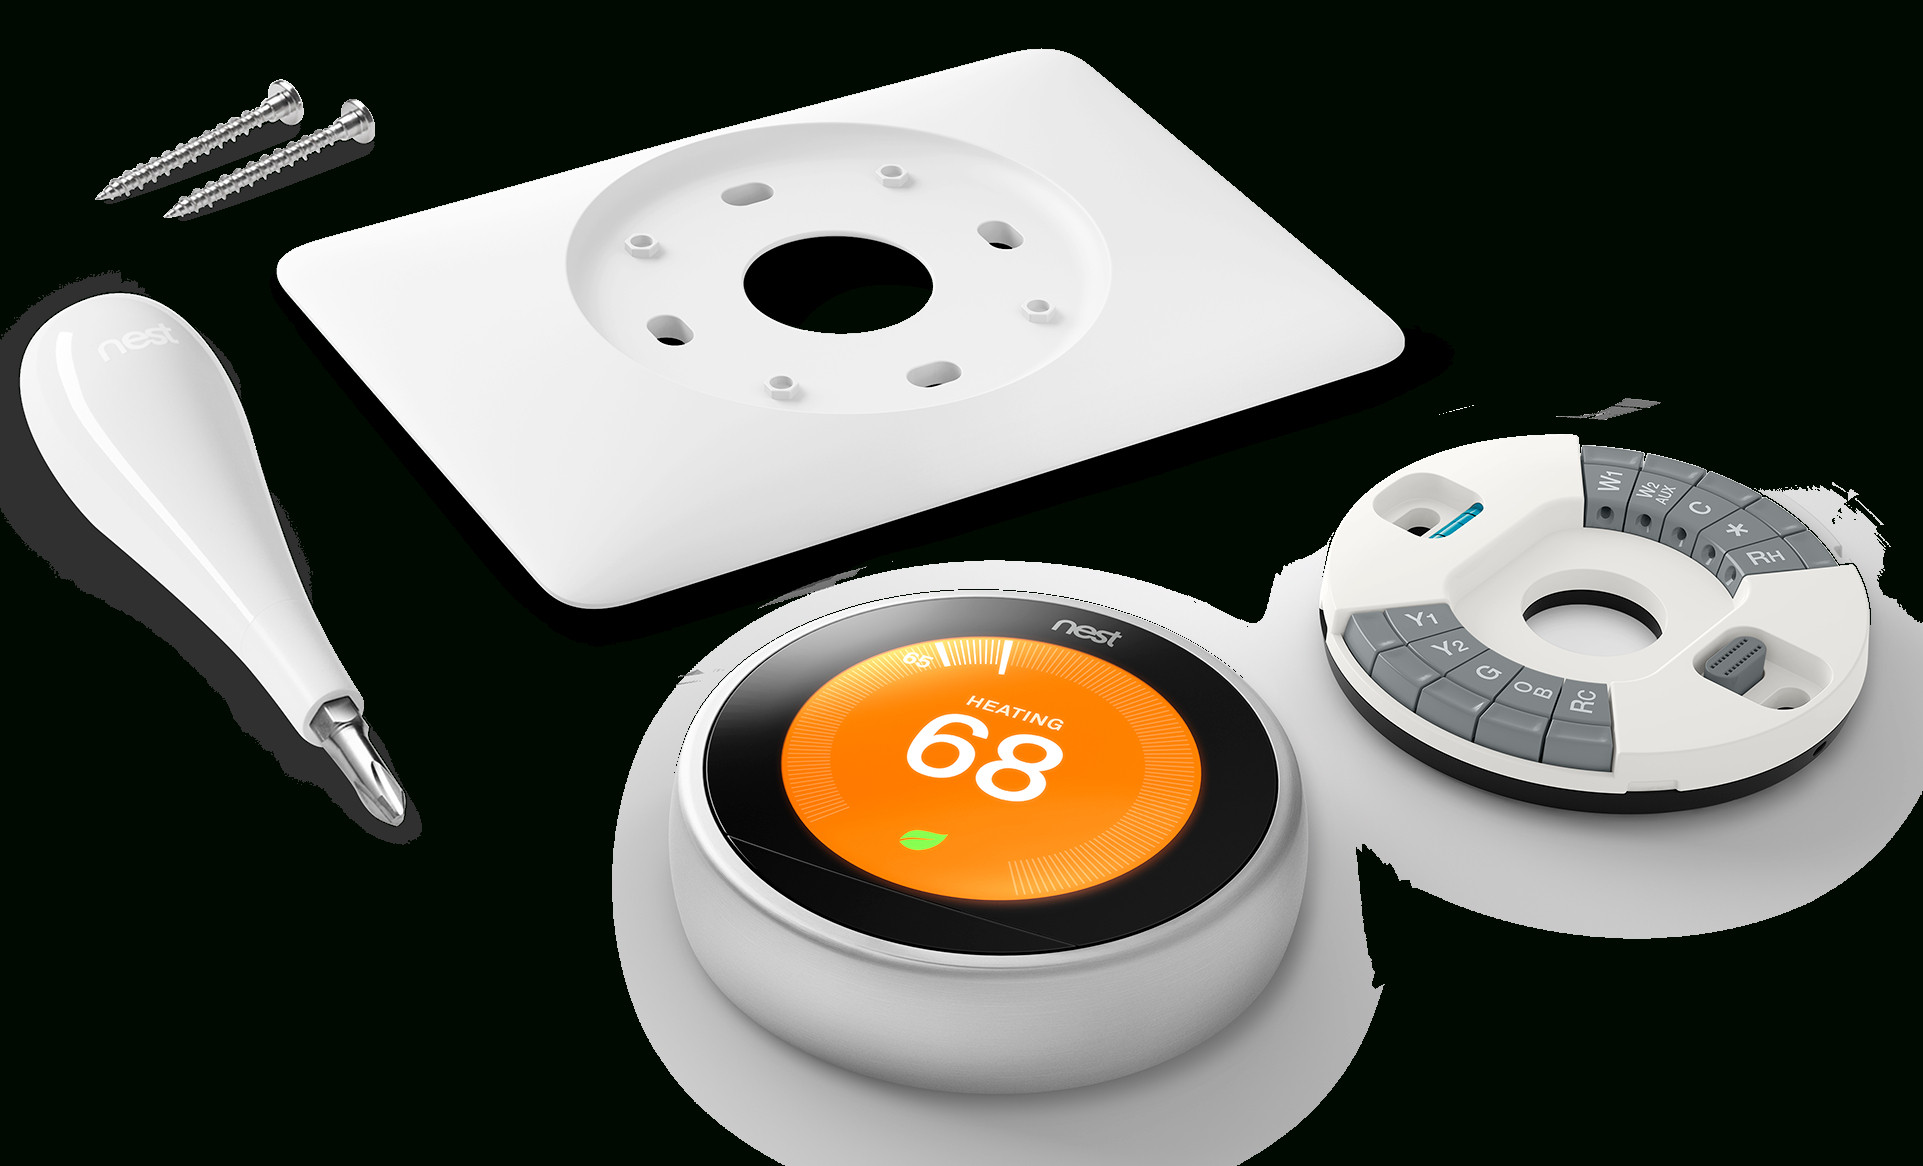 How To Install Your Nest Thermostat - Wiring Diagram Nest Model 02A